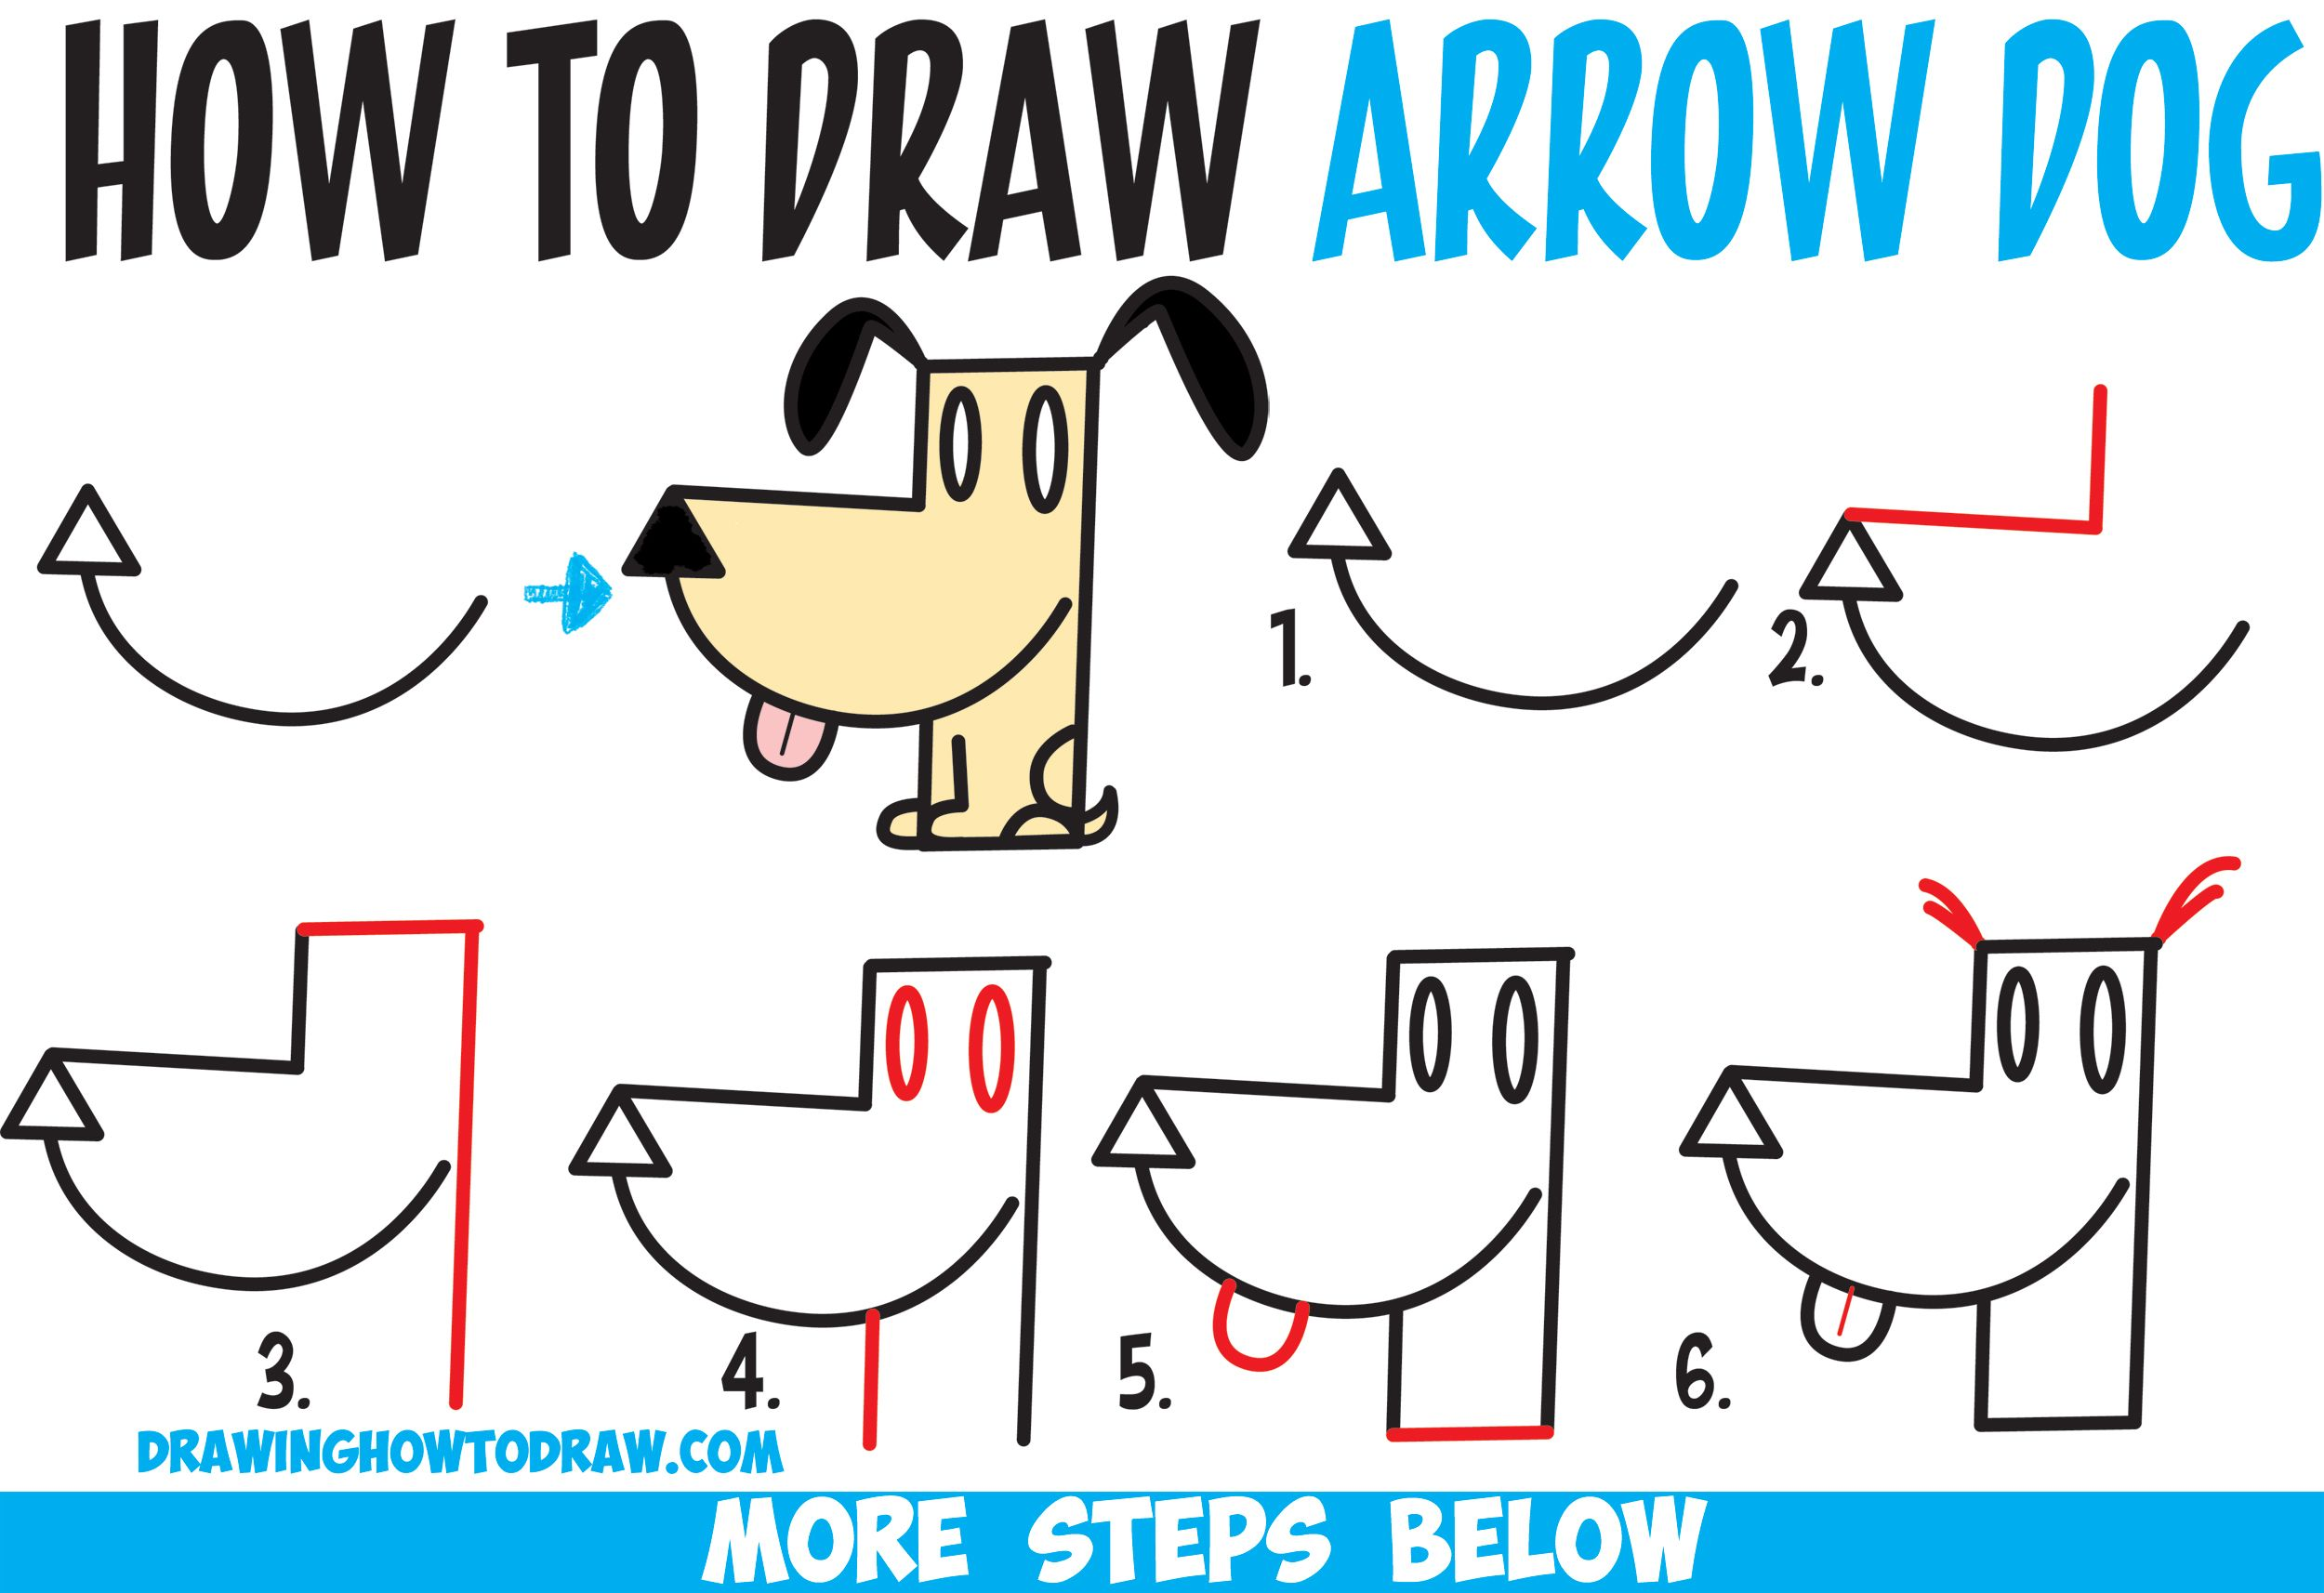 Animal Art Image By Ashley Kasel In 2020 Dog Drawing Simple Dog